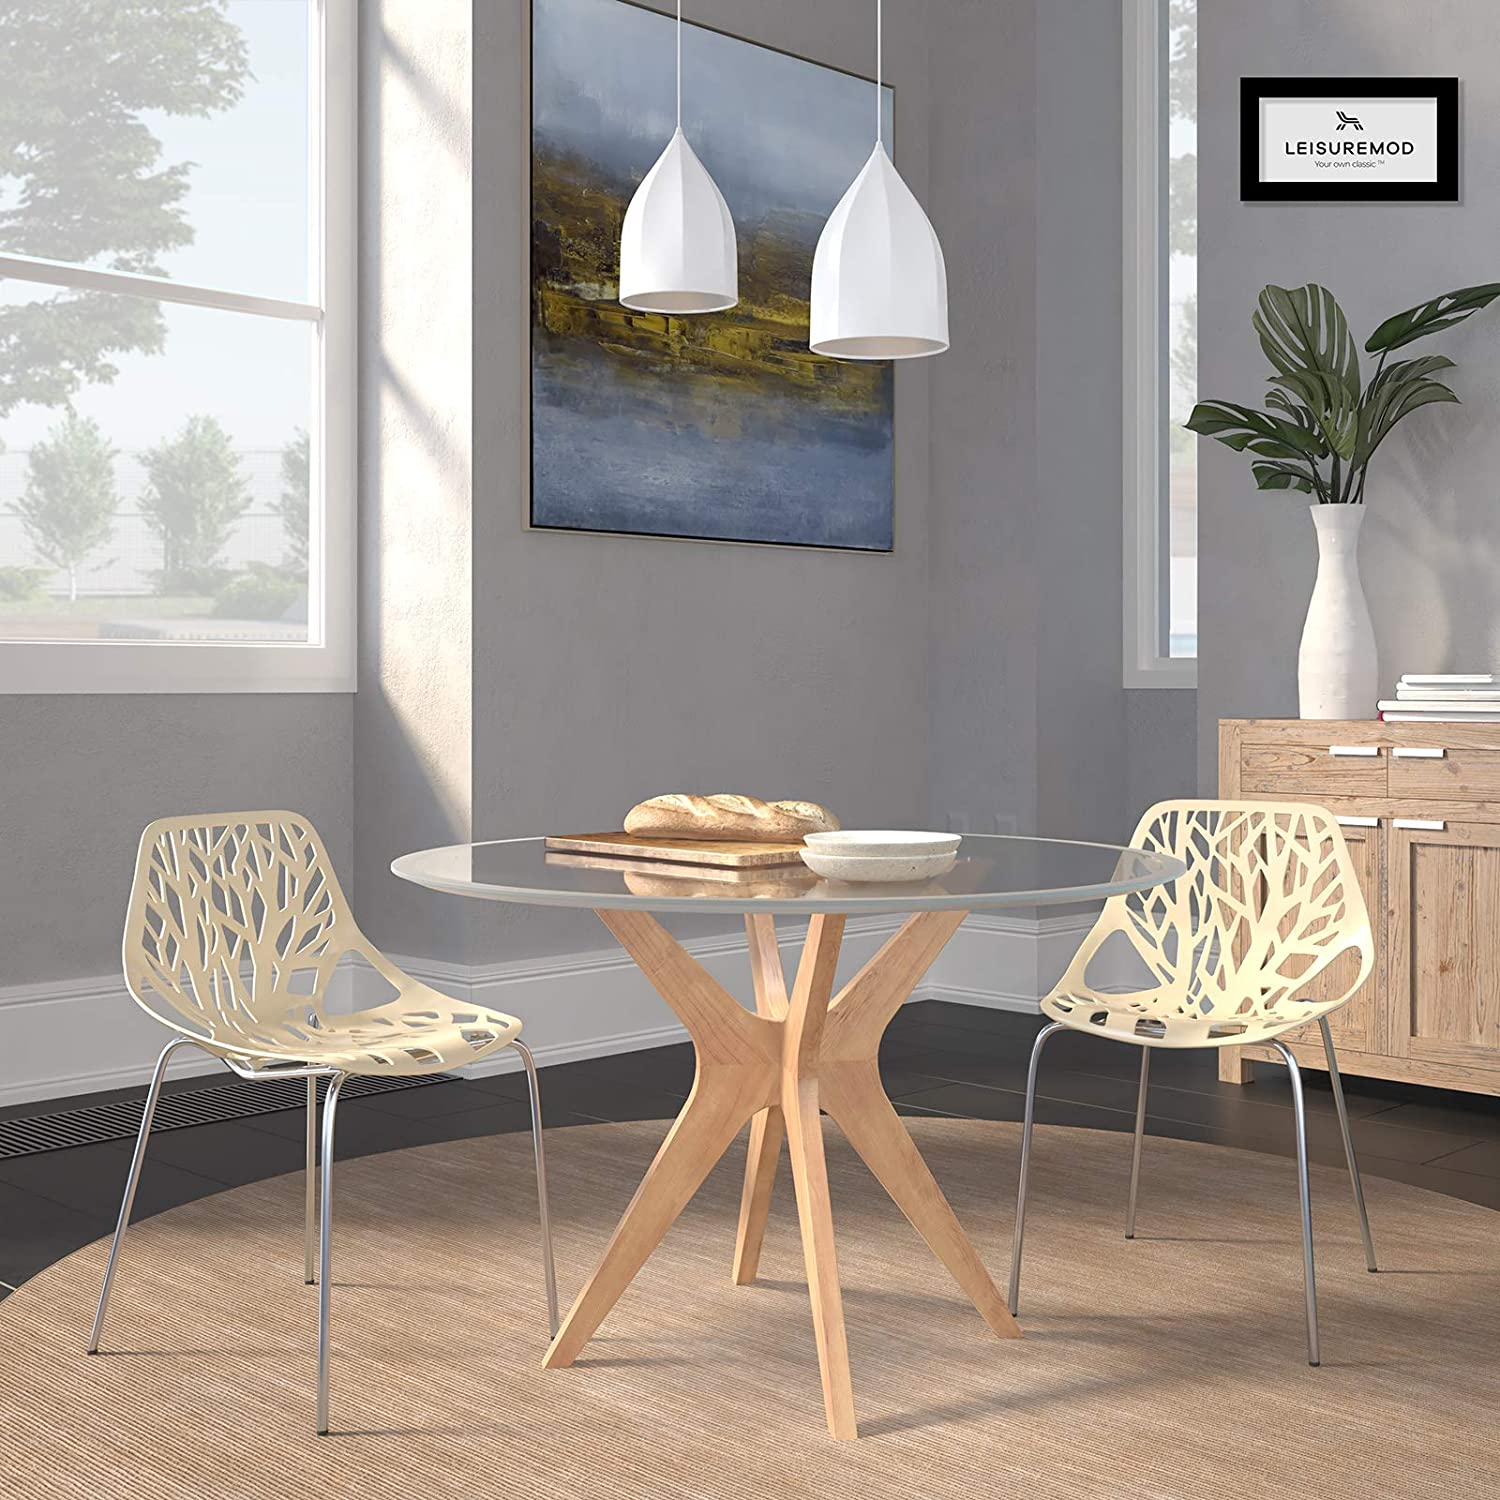 LeisureMod Forest Modern Dining Chair with Chromed Legs, Set of 2 Cream